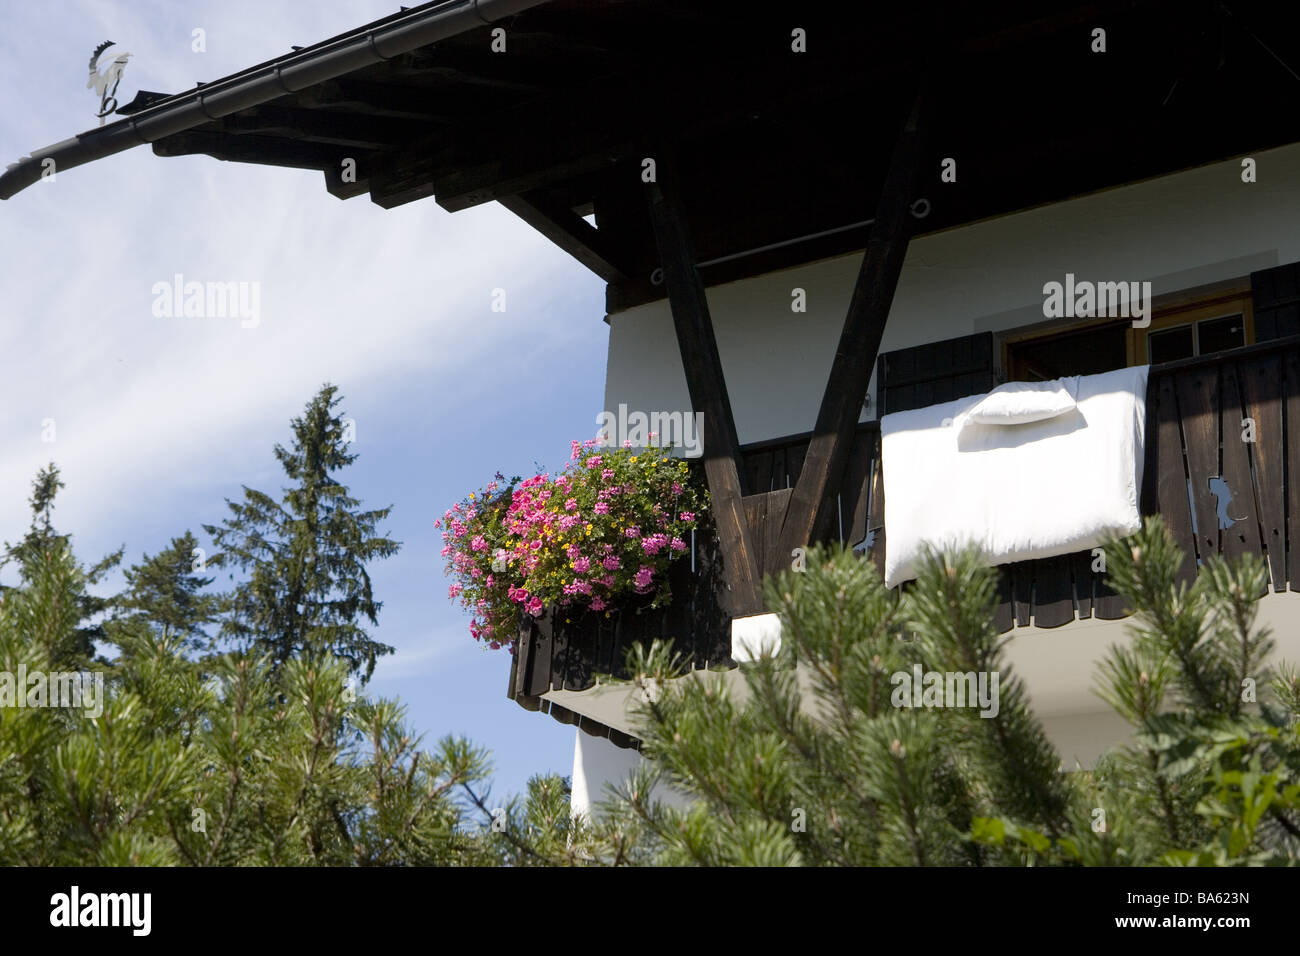 Residence detail balcony flowers bedding airs house Alps-house forest trees idylls vacation vacation house balcony - Stock Image